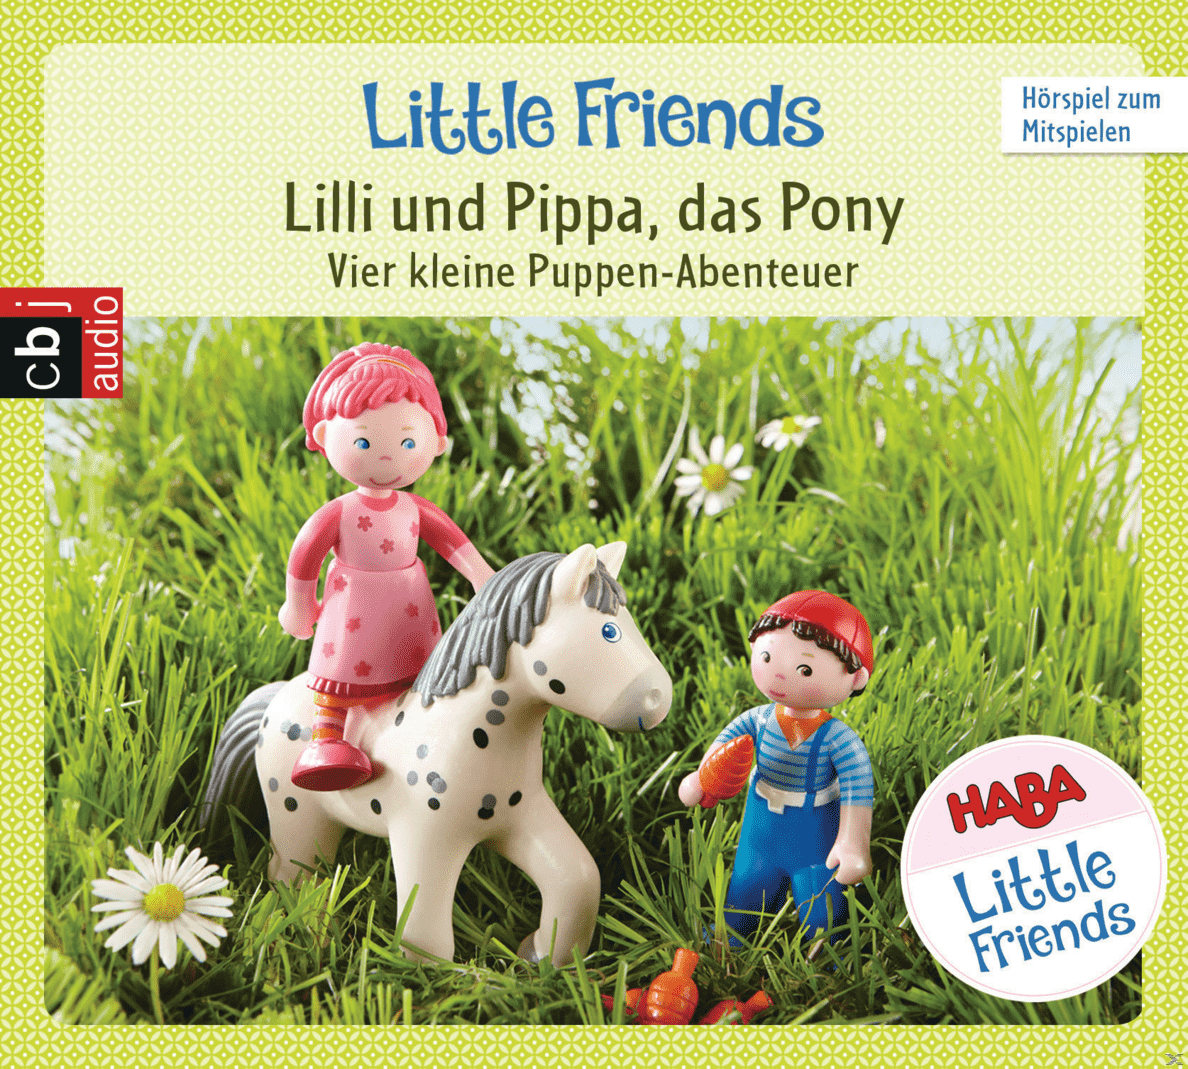 RANDOM HOUSE HABA Little Friends – Lilli und Pippa, das Pony